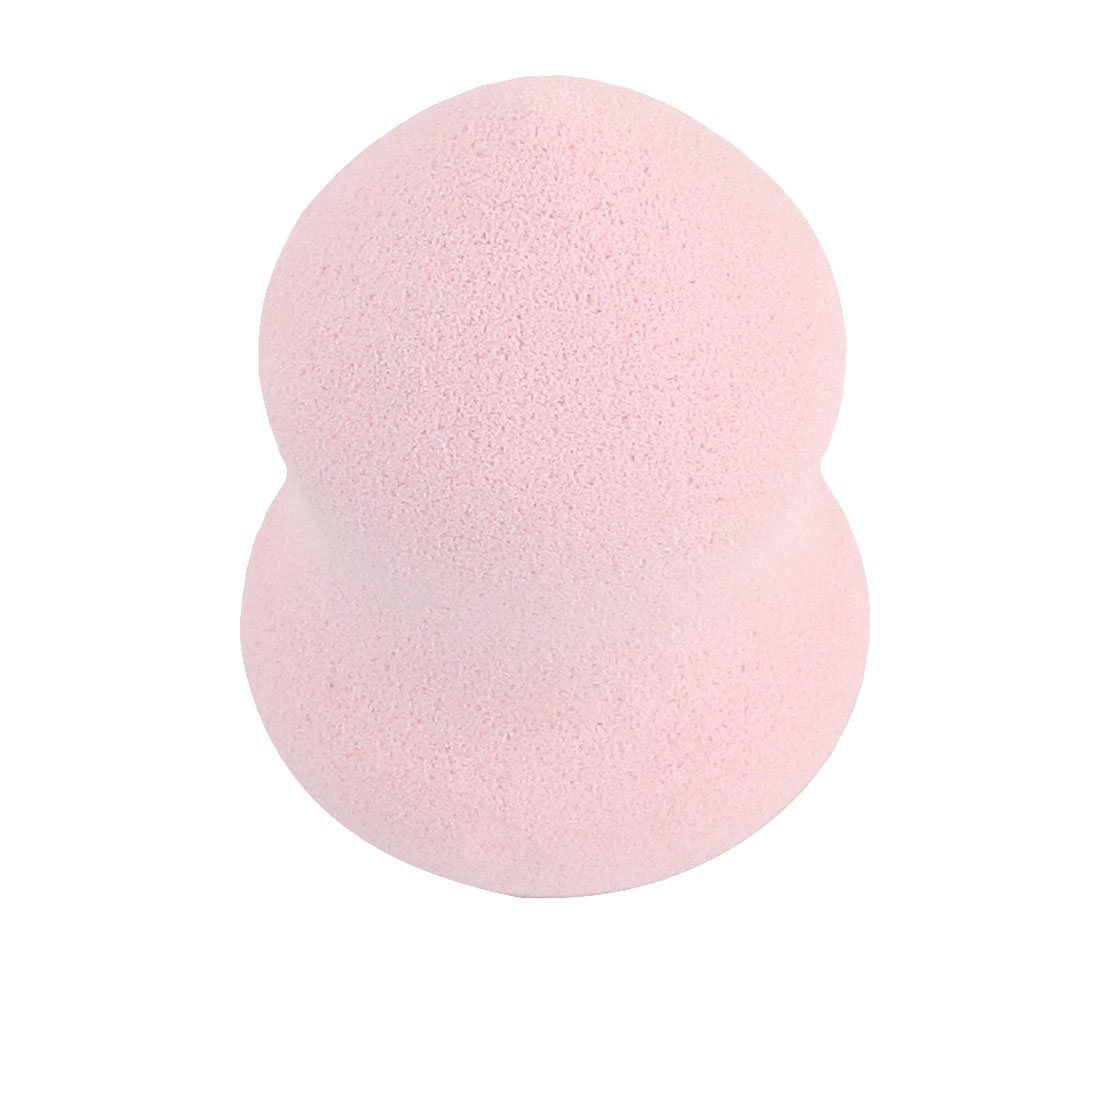 Apricot Bottle Gourd Sponge Flawless Makeup Foundation Blender Powder Puff